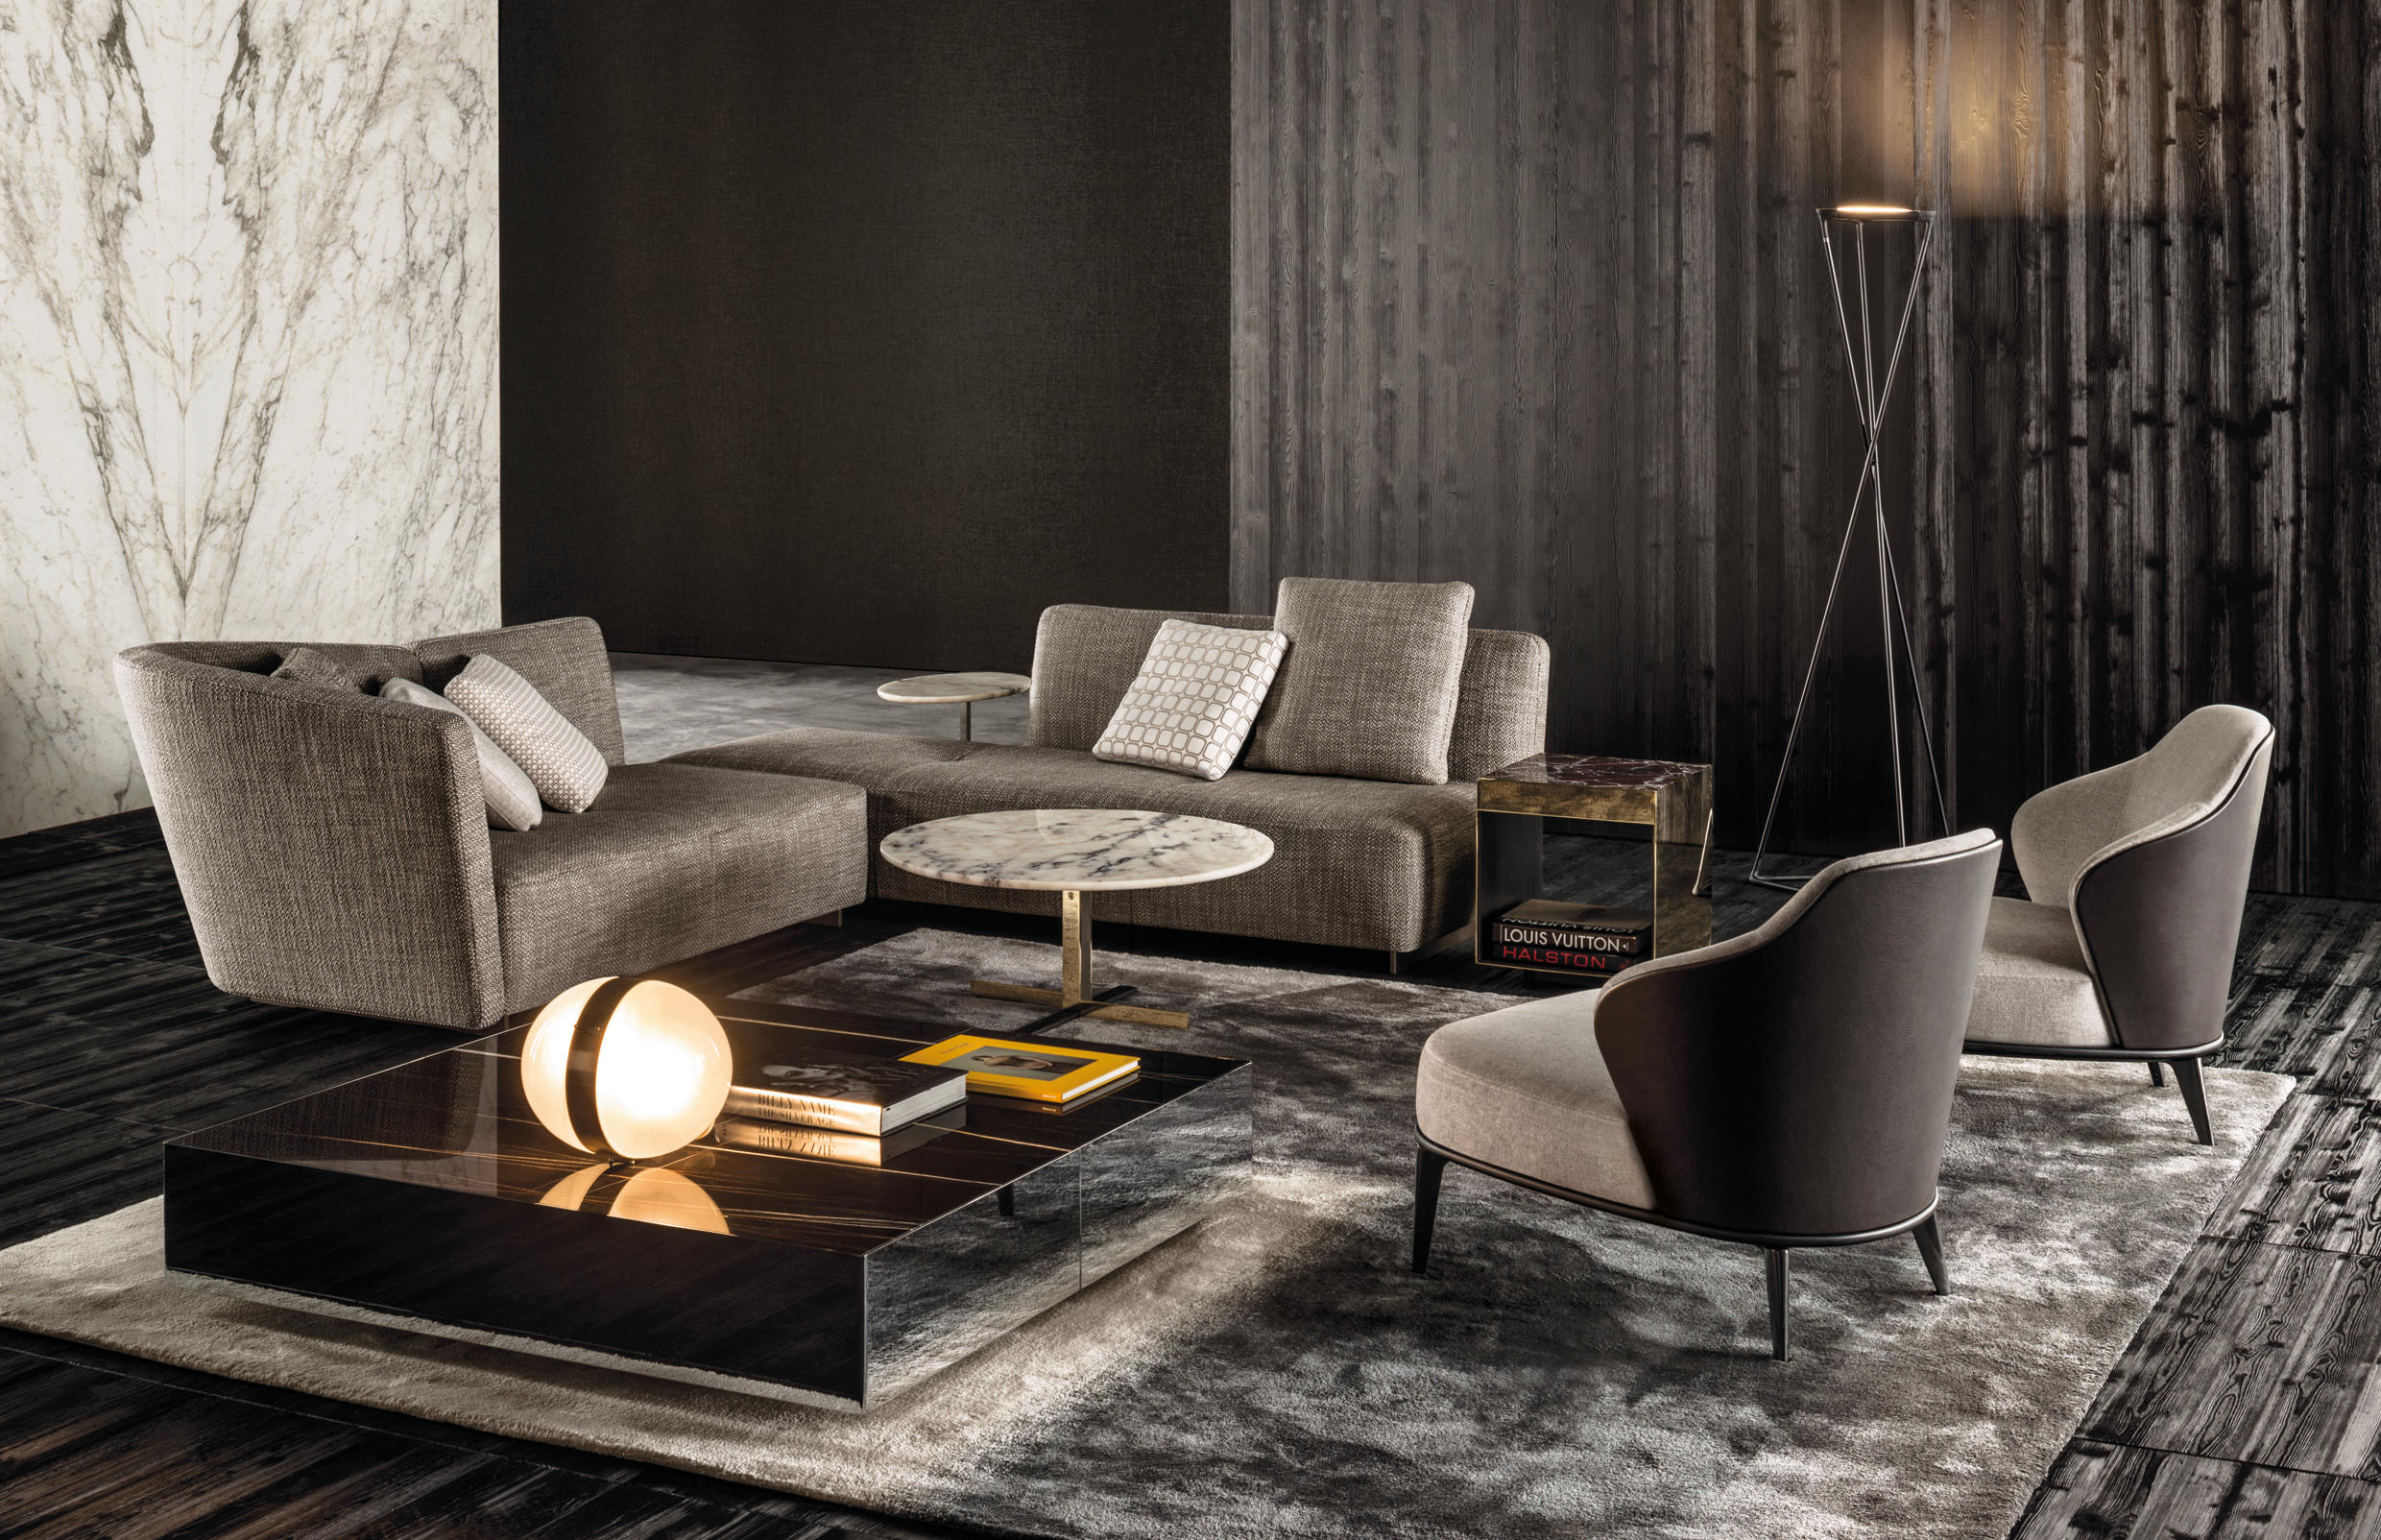 Lounge Seymour By Minotti · Lounge Seymour By Minotti ...